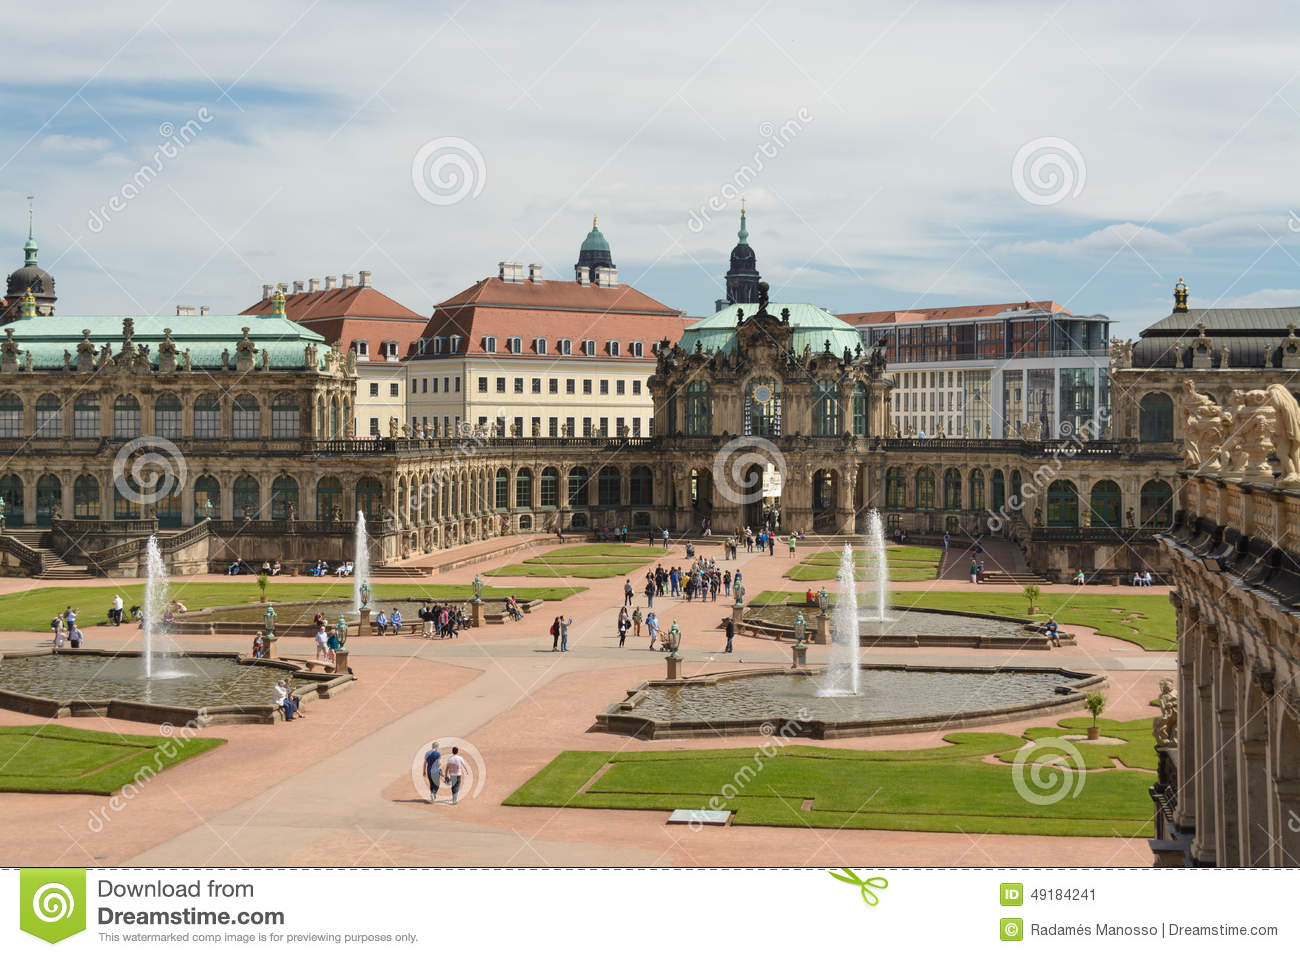 The Zwinger palace and the Dresden castle